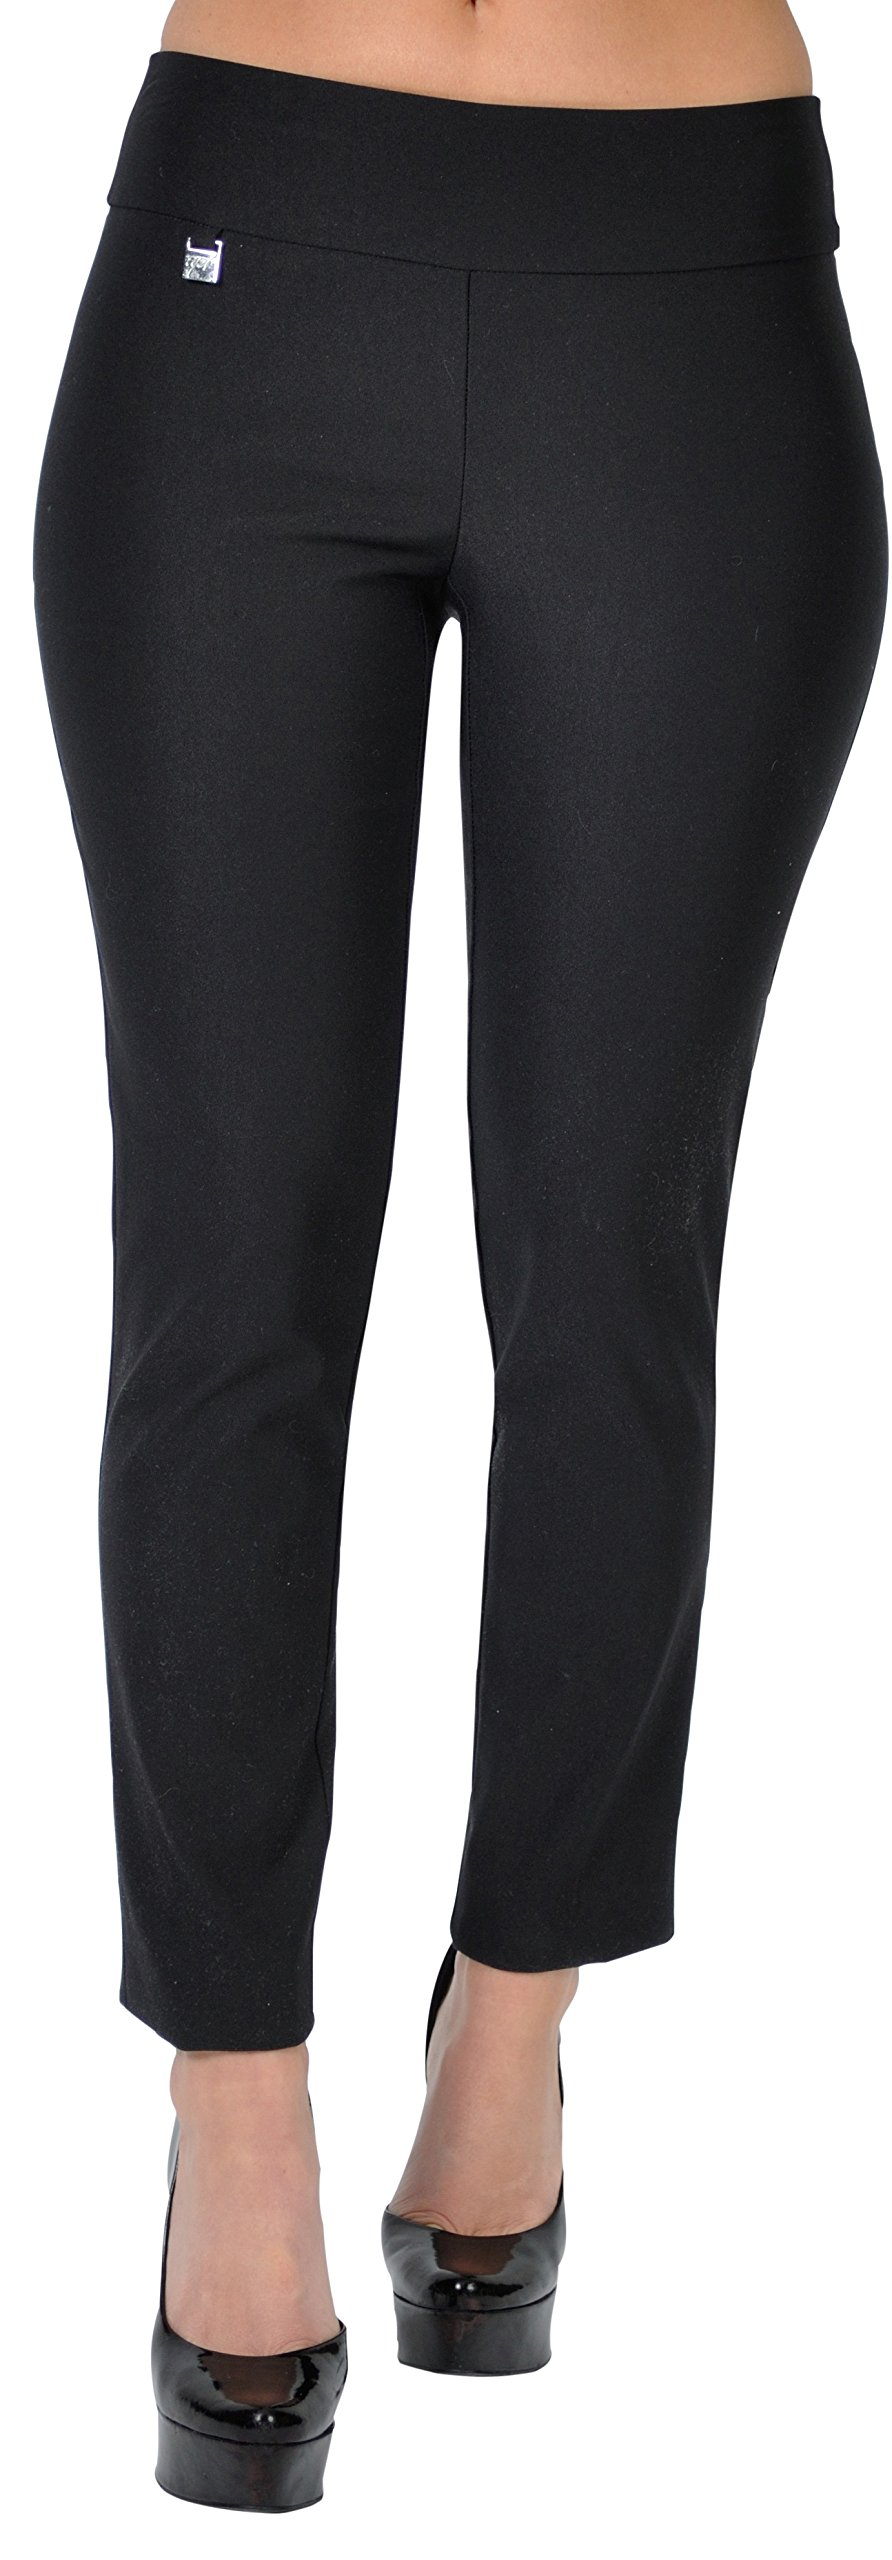 UP Womens Slim Ankle Pants Flatten and Flatter Style 64566 Size 14 Black by UP! Pants